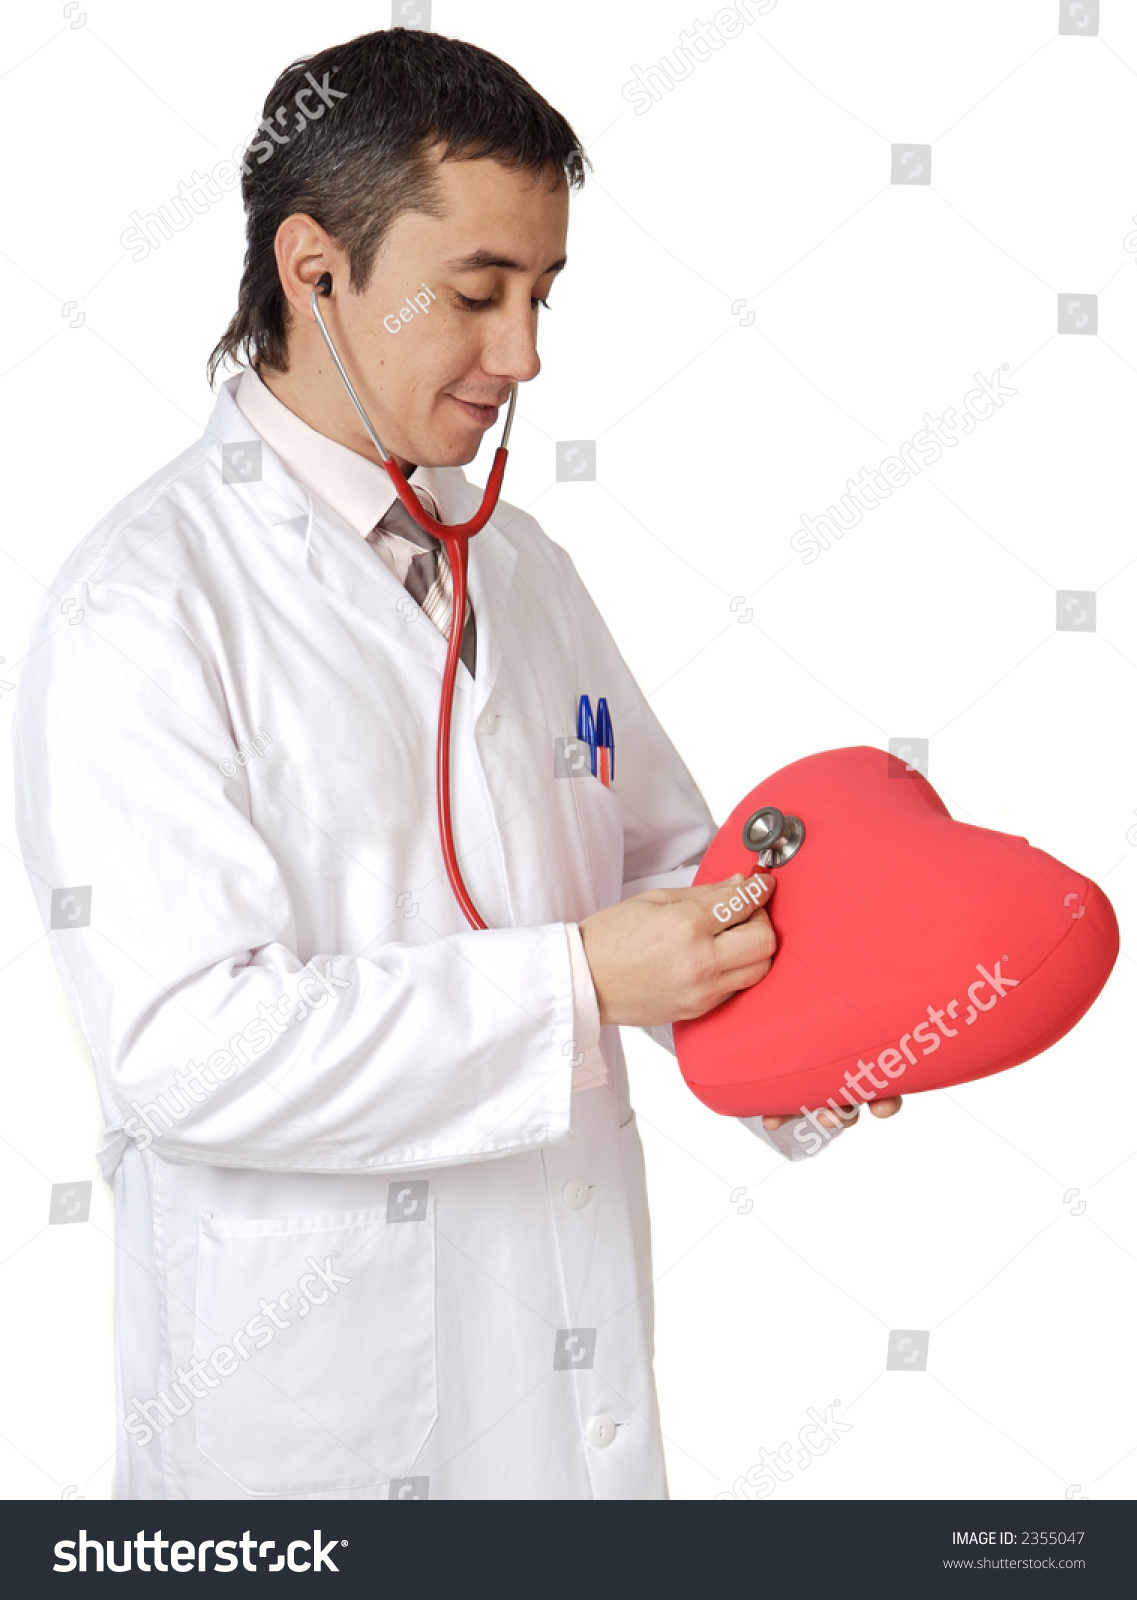 Cardiologist papers